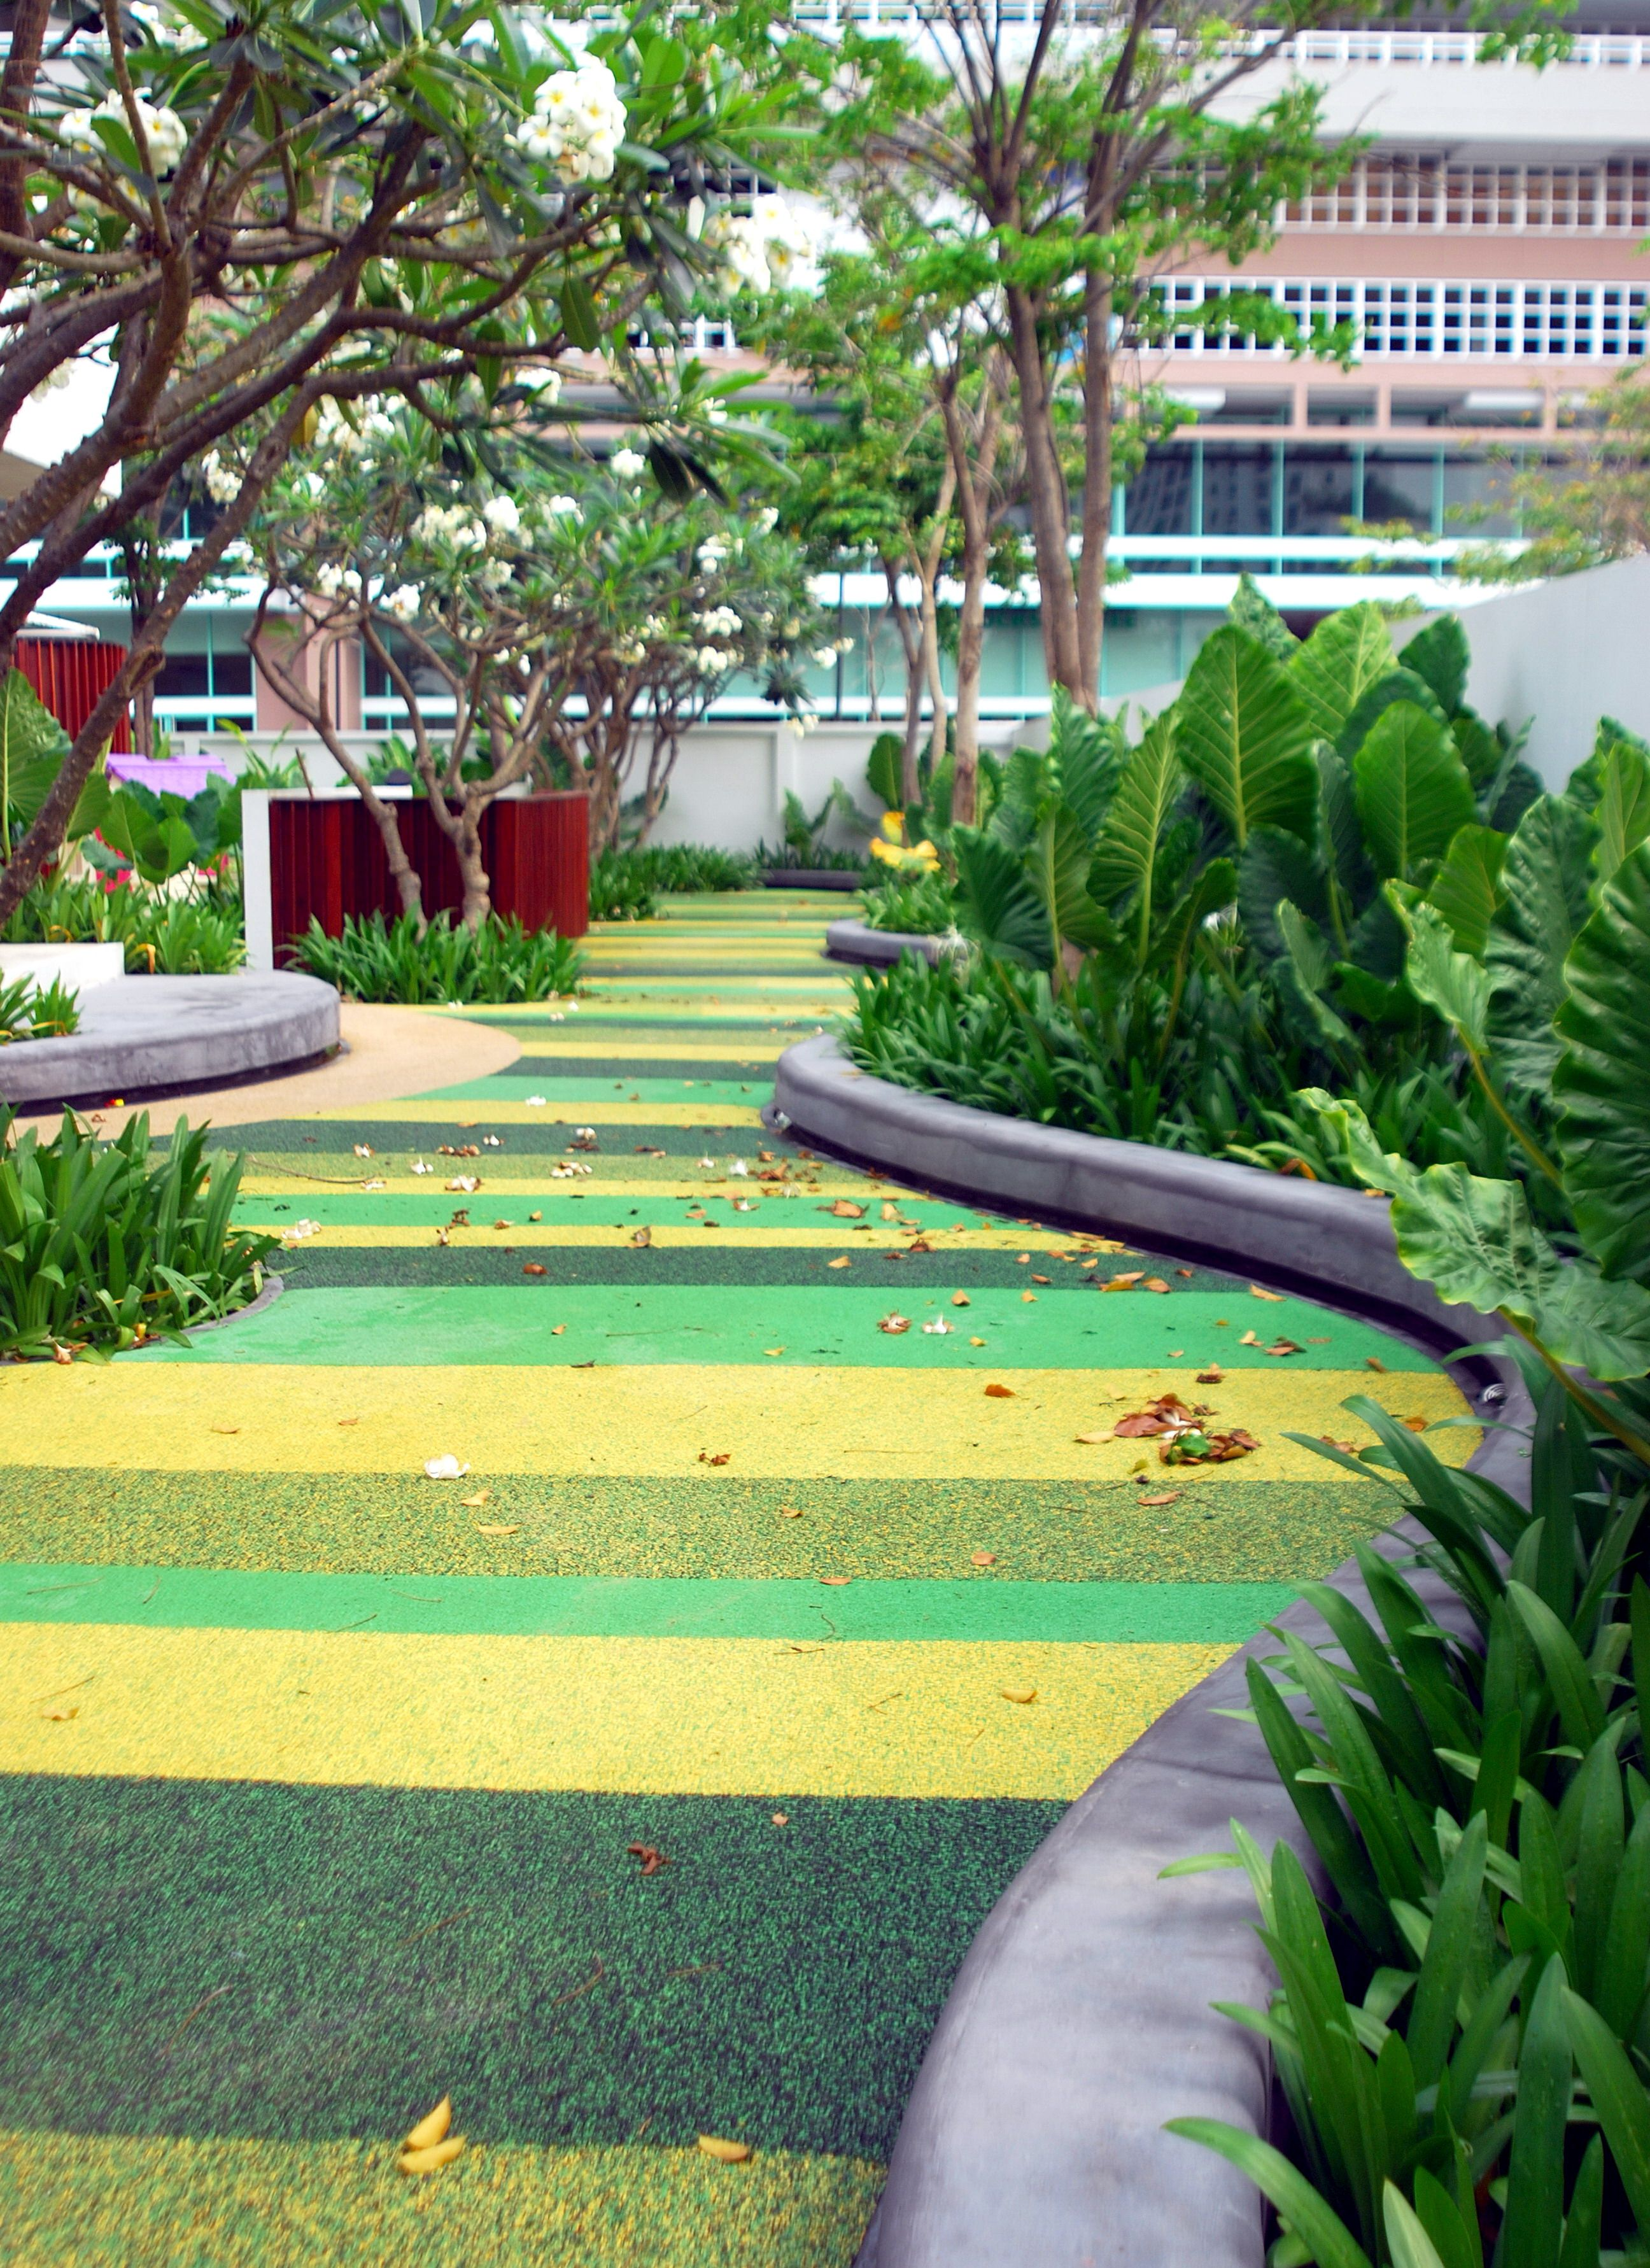 Super Garden Explores The Senses To Accelerate The Learning Of Kindergarten Children